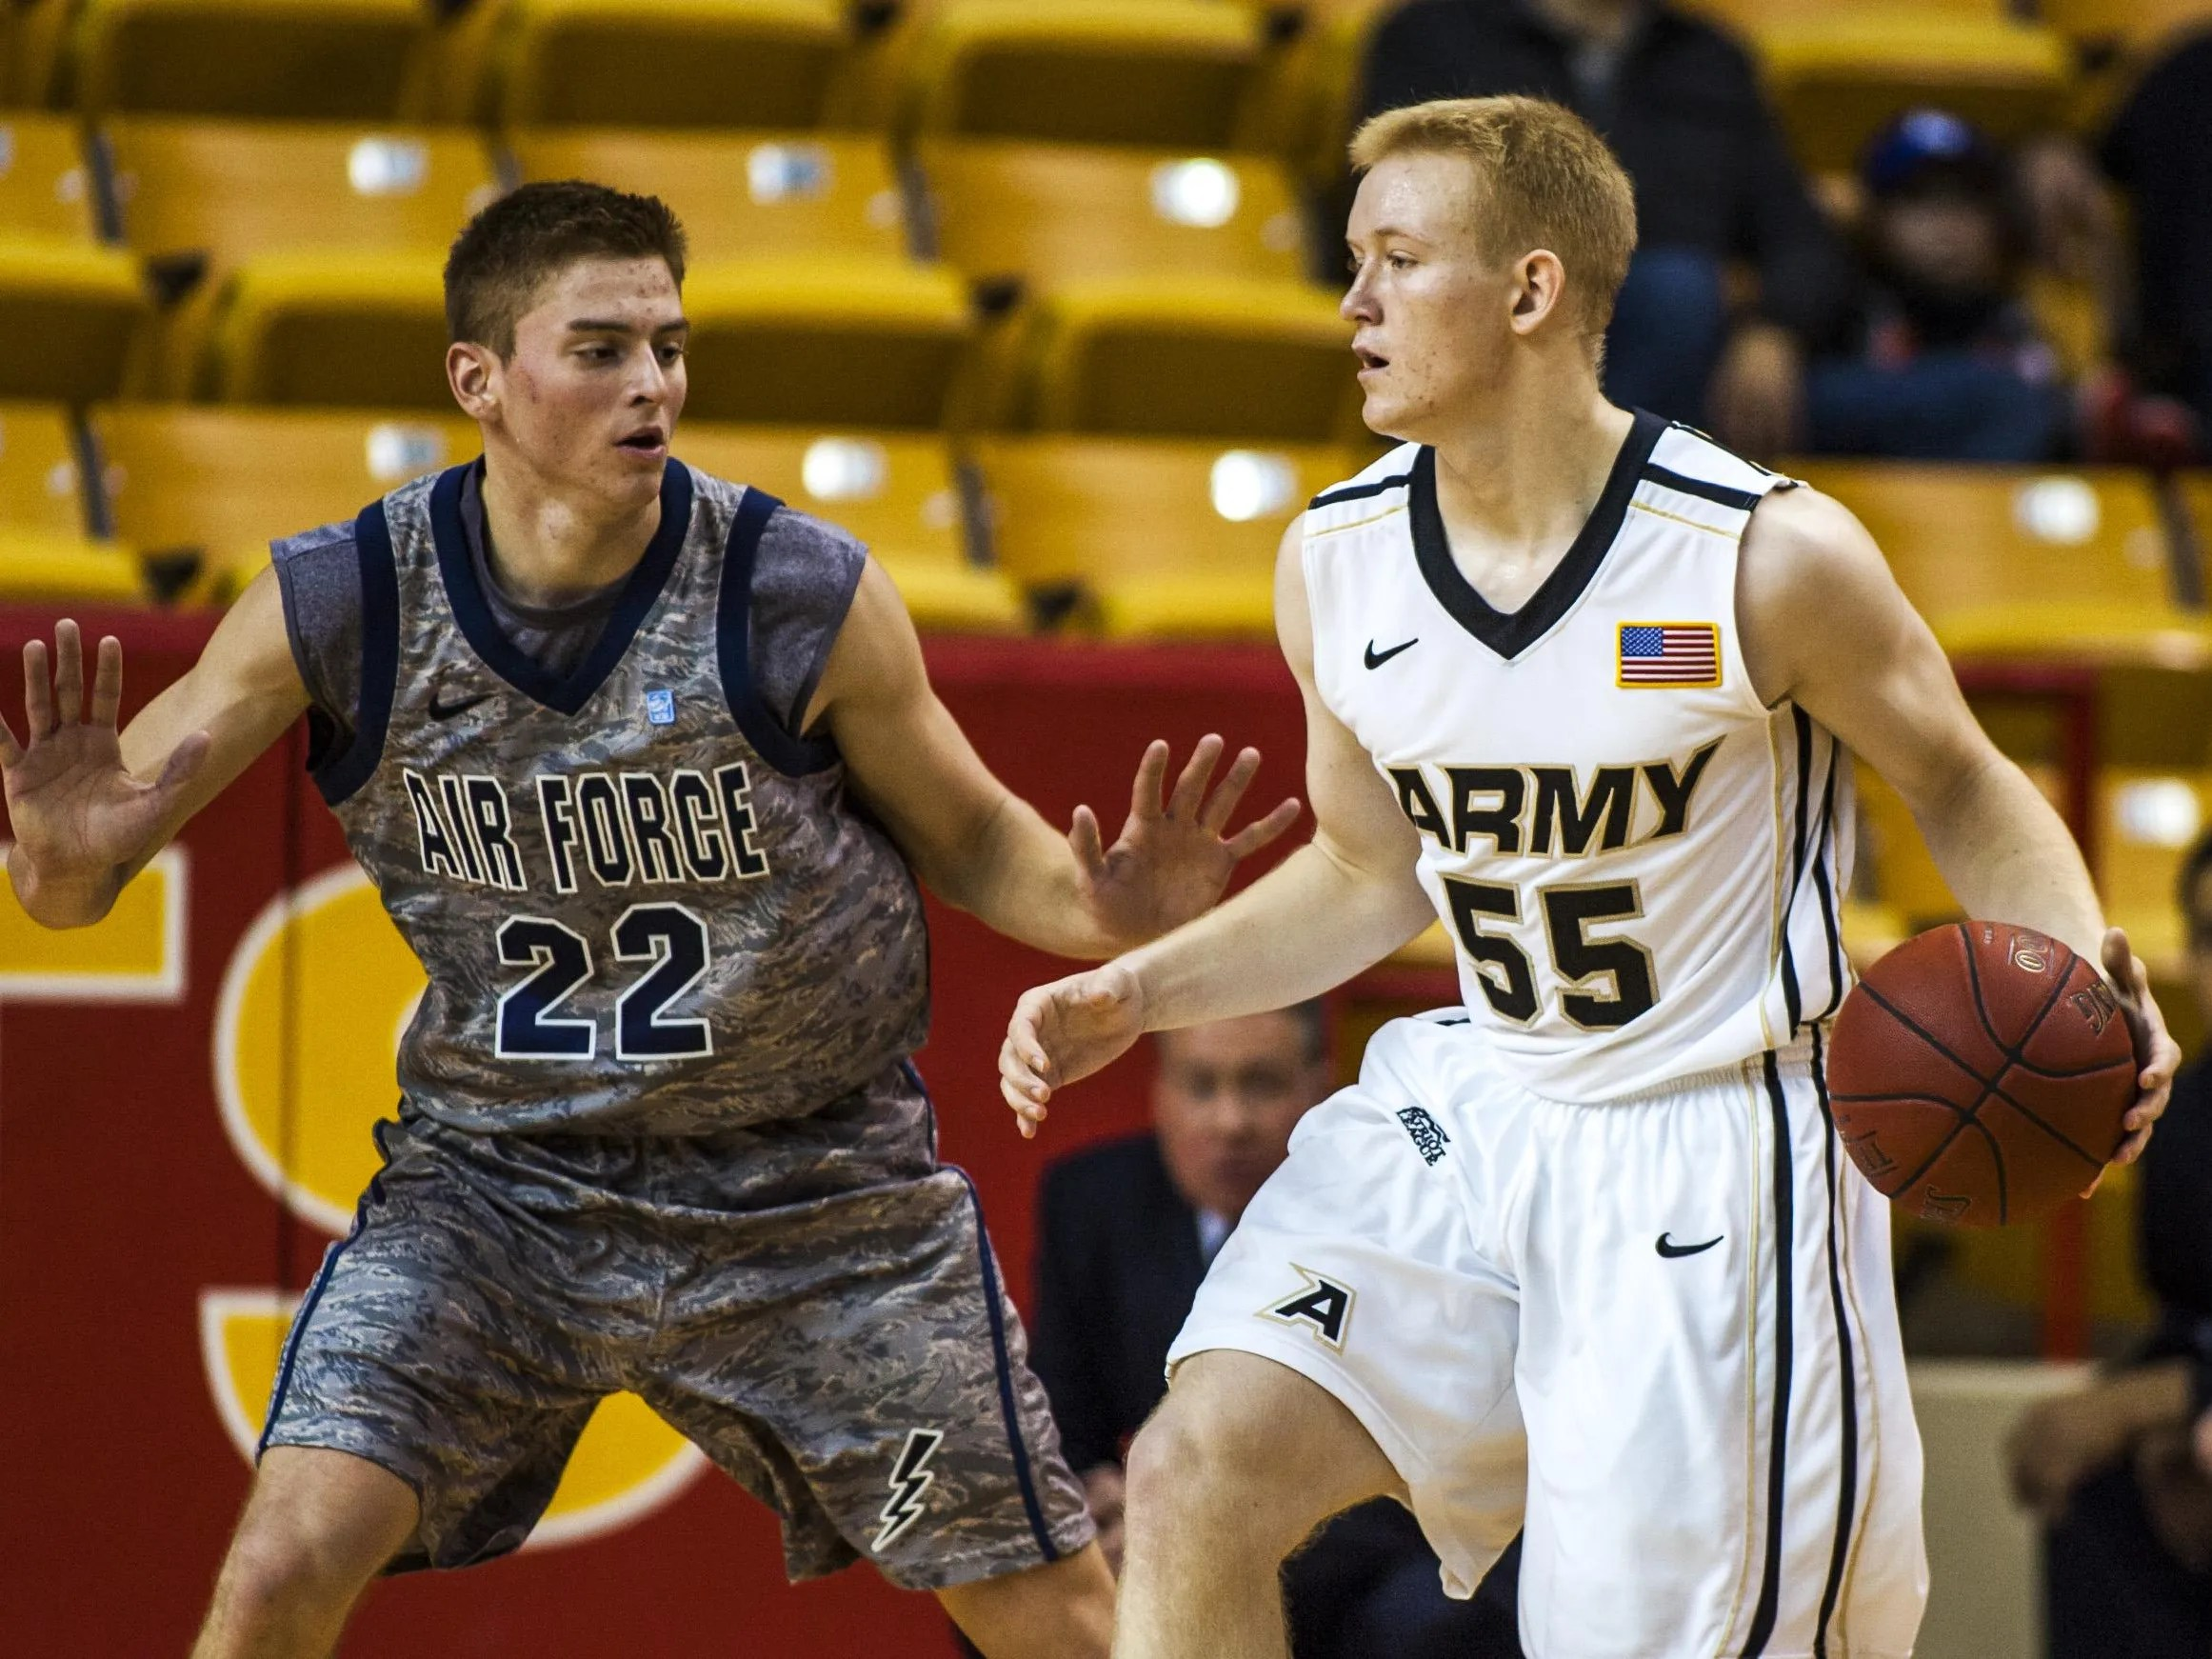 Tanner Omlid To Transfer To Wou Usa Today High School Sports Usa Today High School Sports